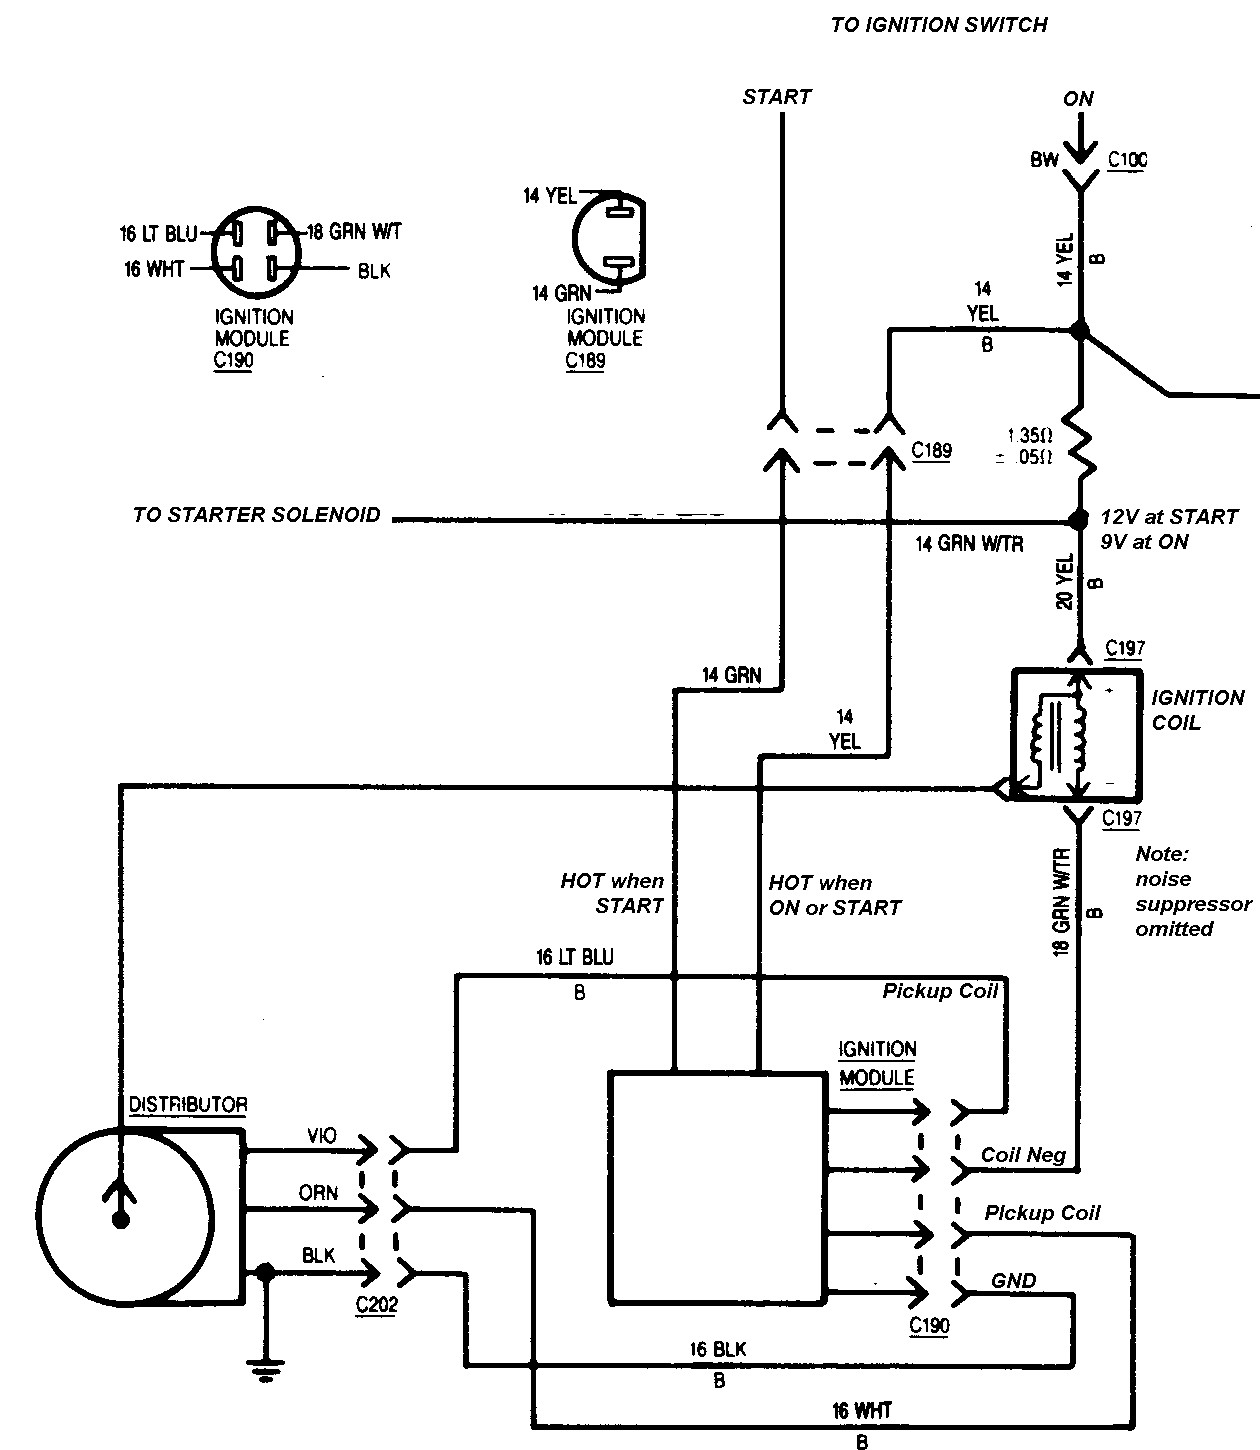 1989 Chevy C1500 Starter Solenoid Wiring Diagram Will Be A Chevrolet Gm Ignition Wire Harness Data Schema Rh Site De Joueurs Com